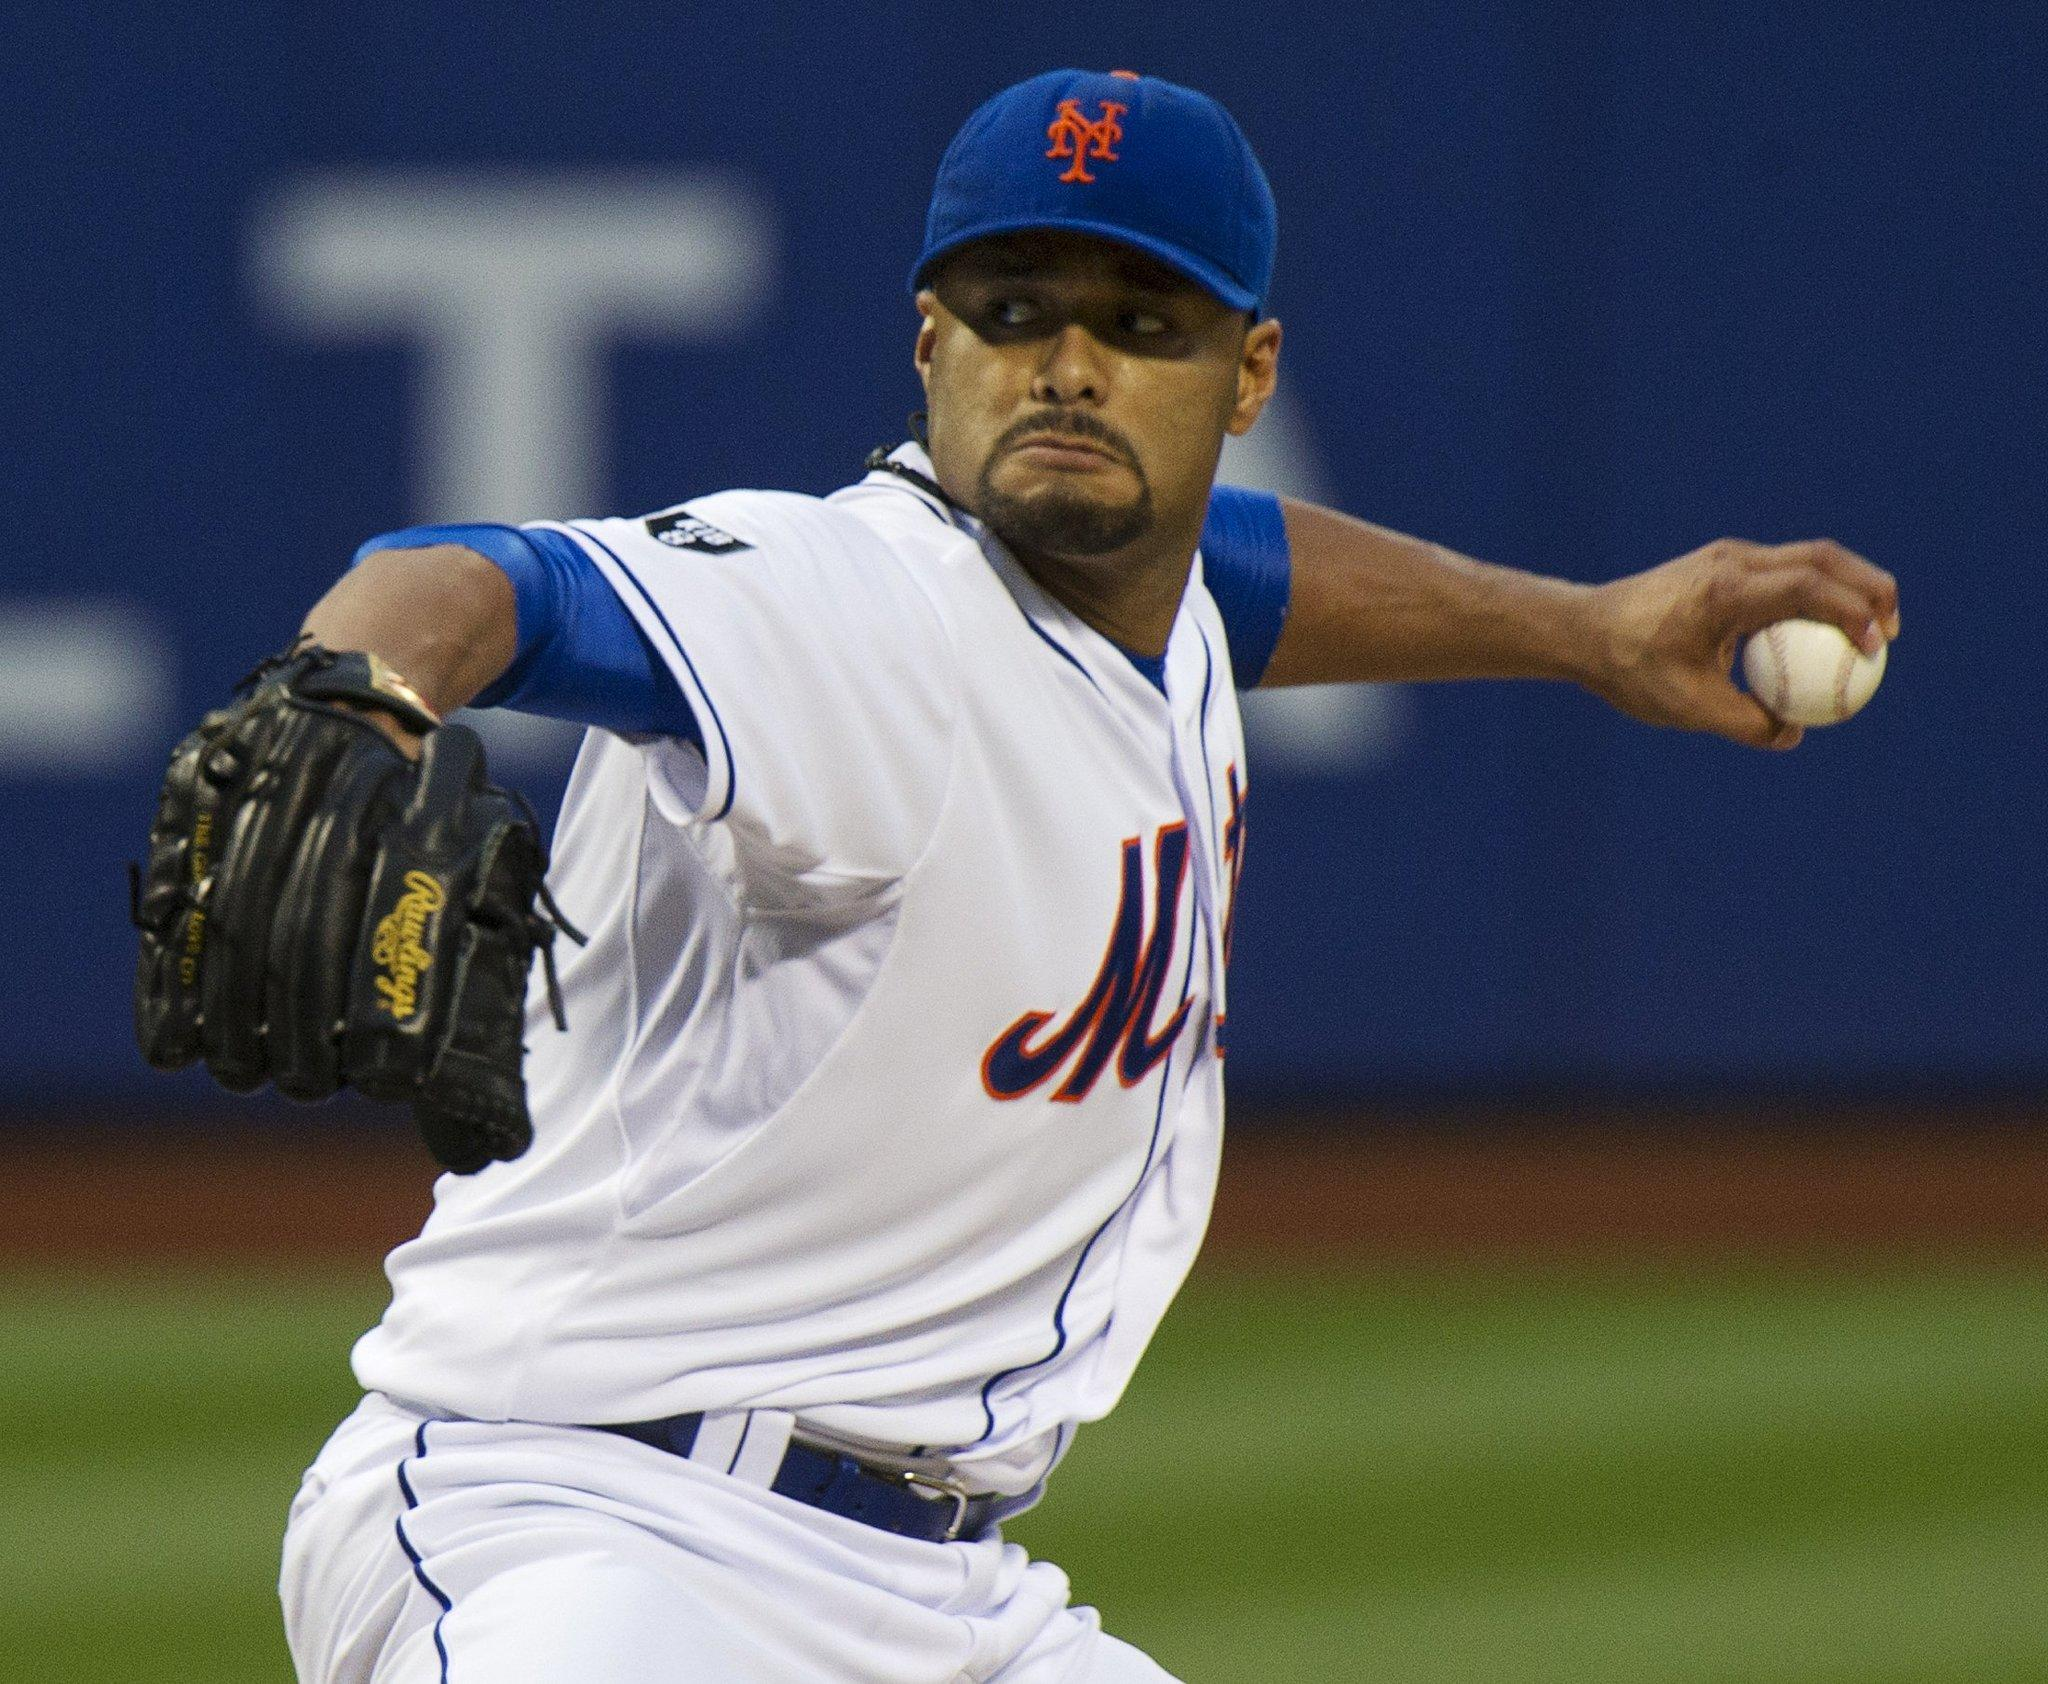 Johan Santana won Cy Young Awards in 2004 and 2006, but injuries derailed his career.